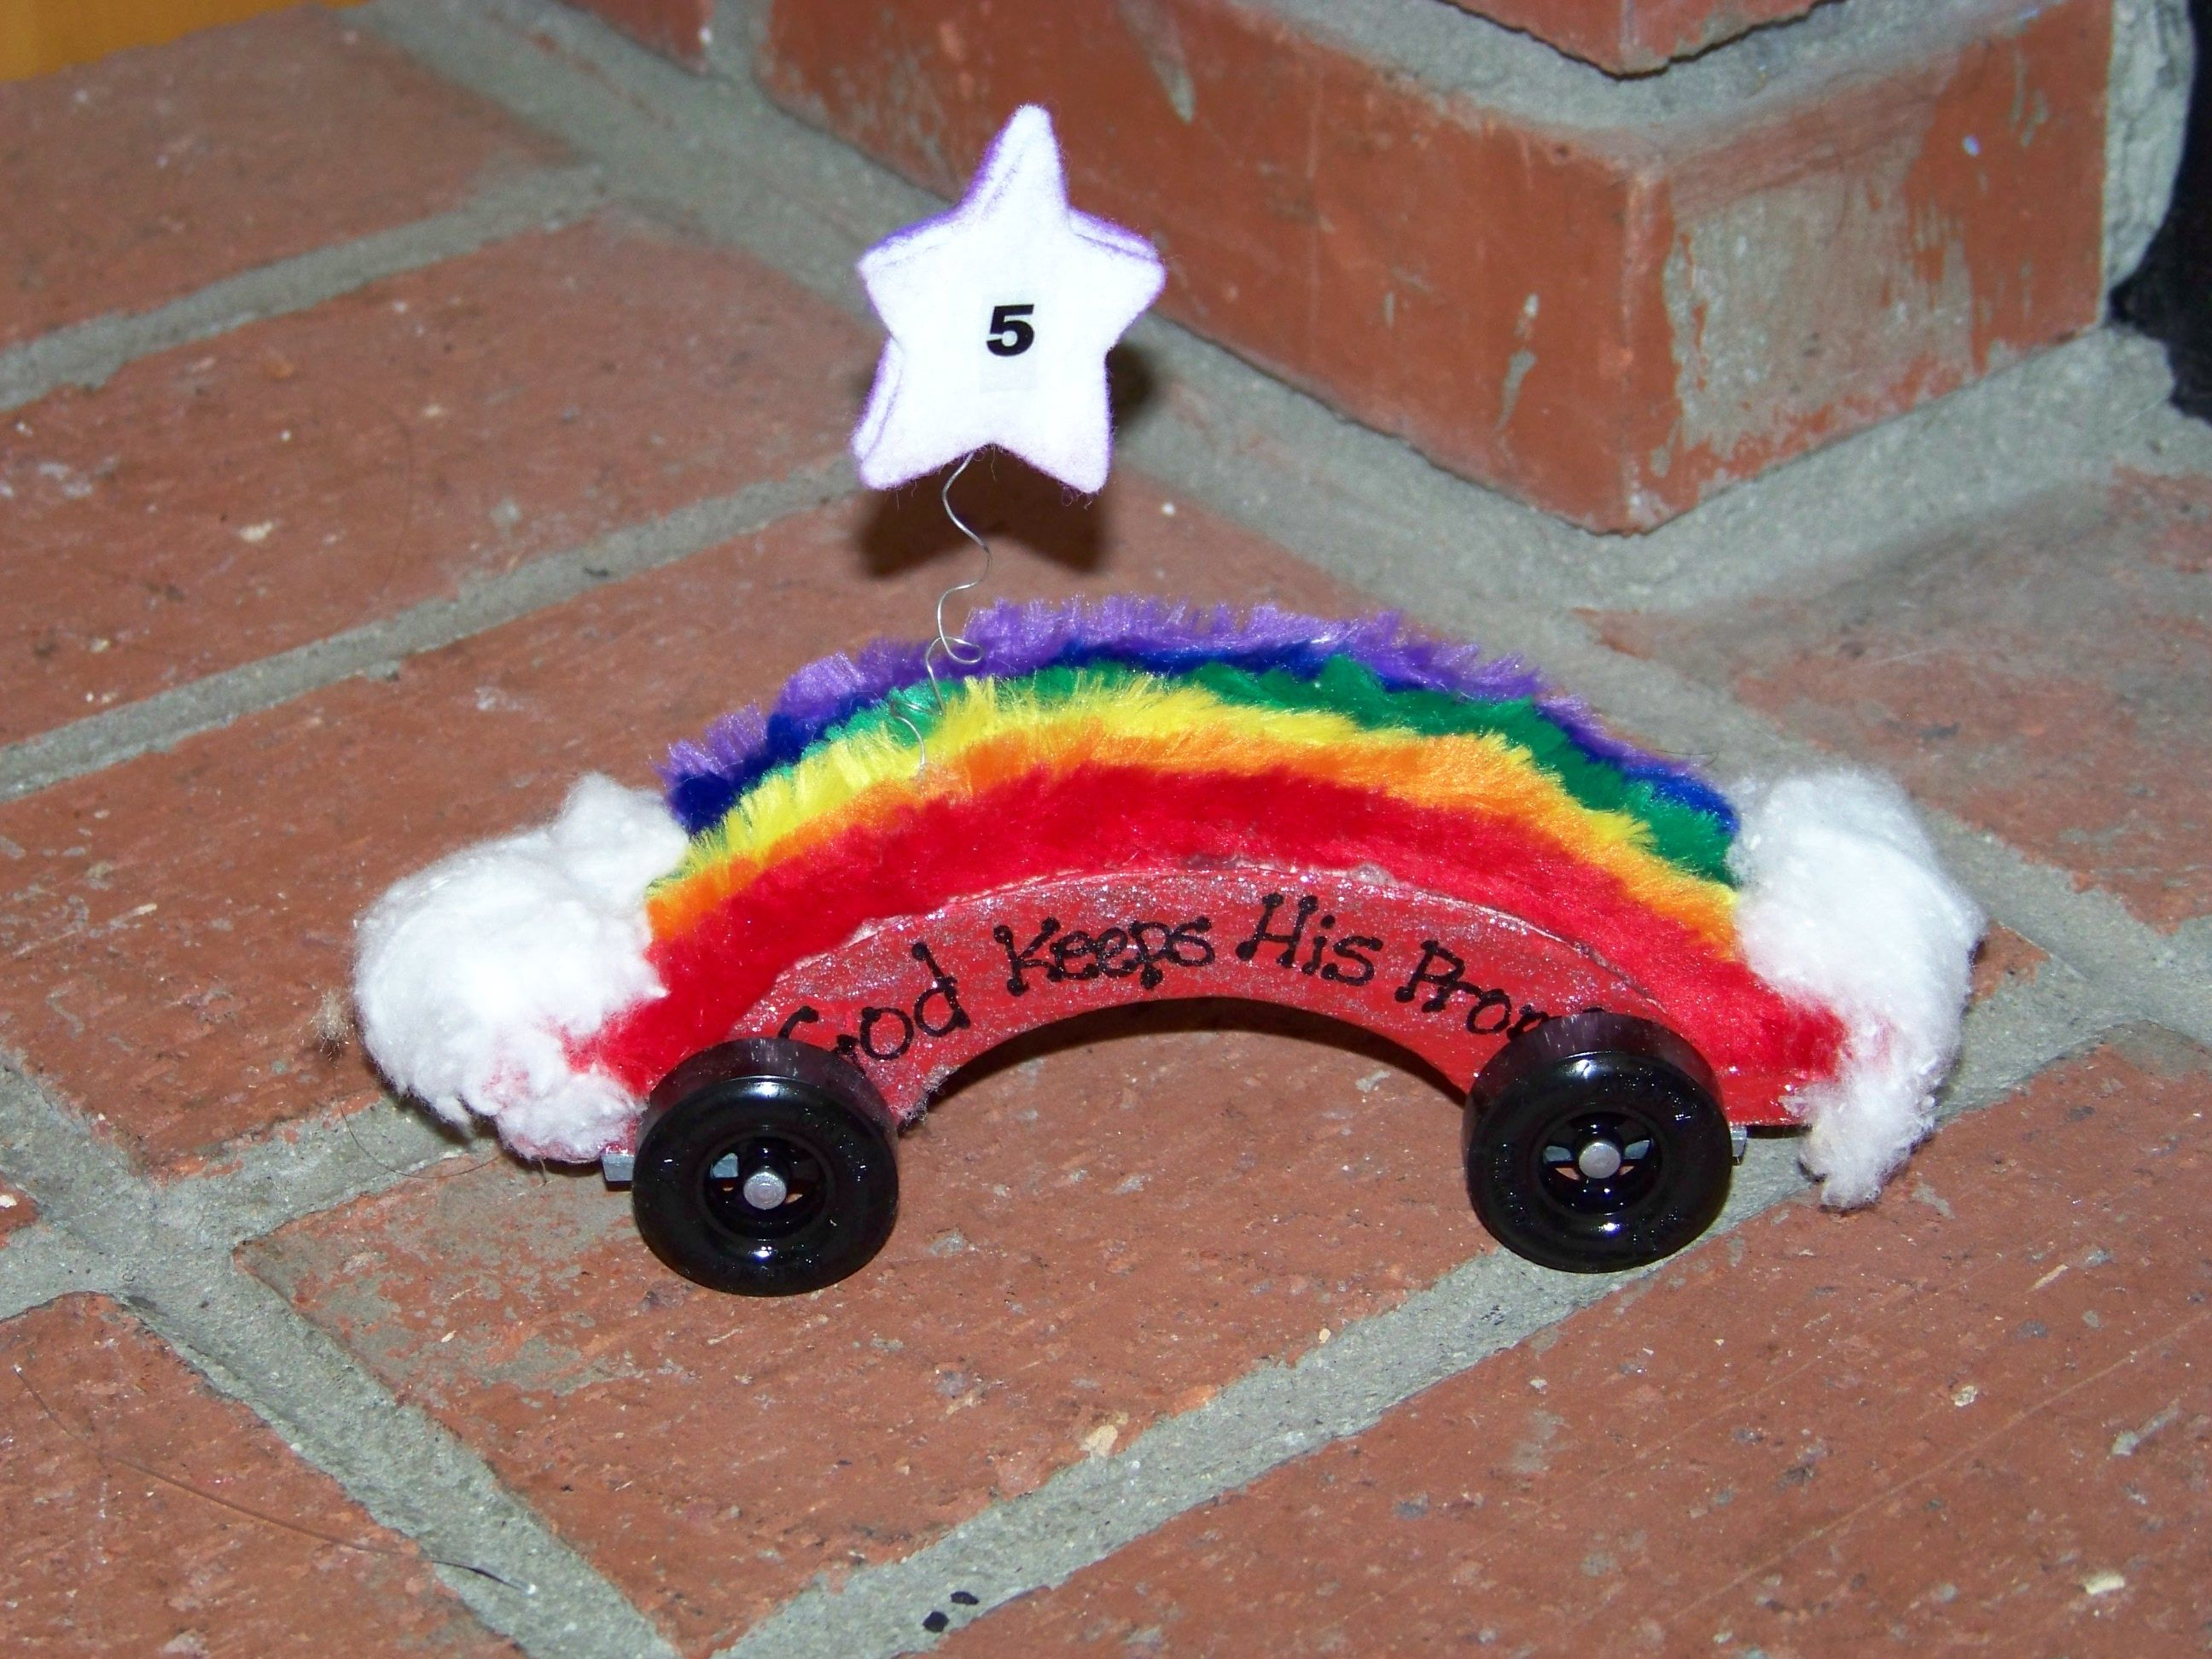 Google themes cars - Awana Grand Prix Car This Took First Place For Christian Theme In 2009 Idea